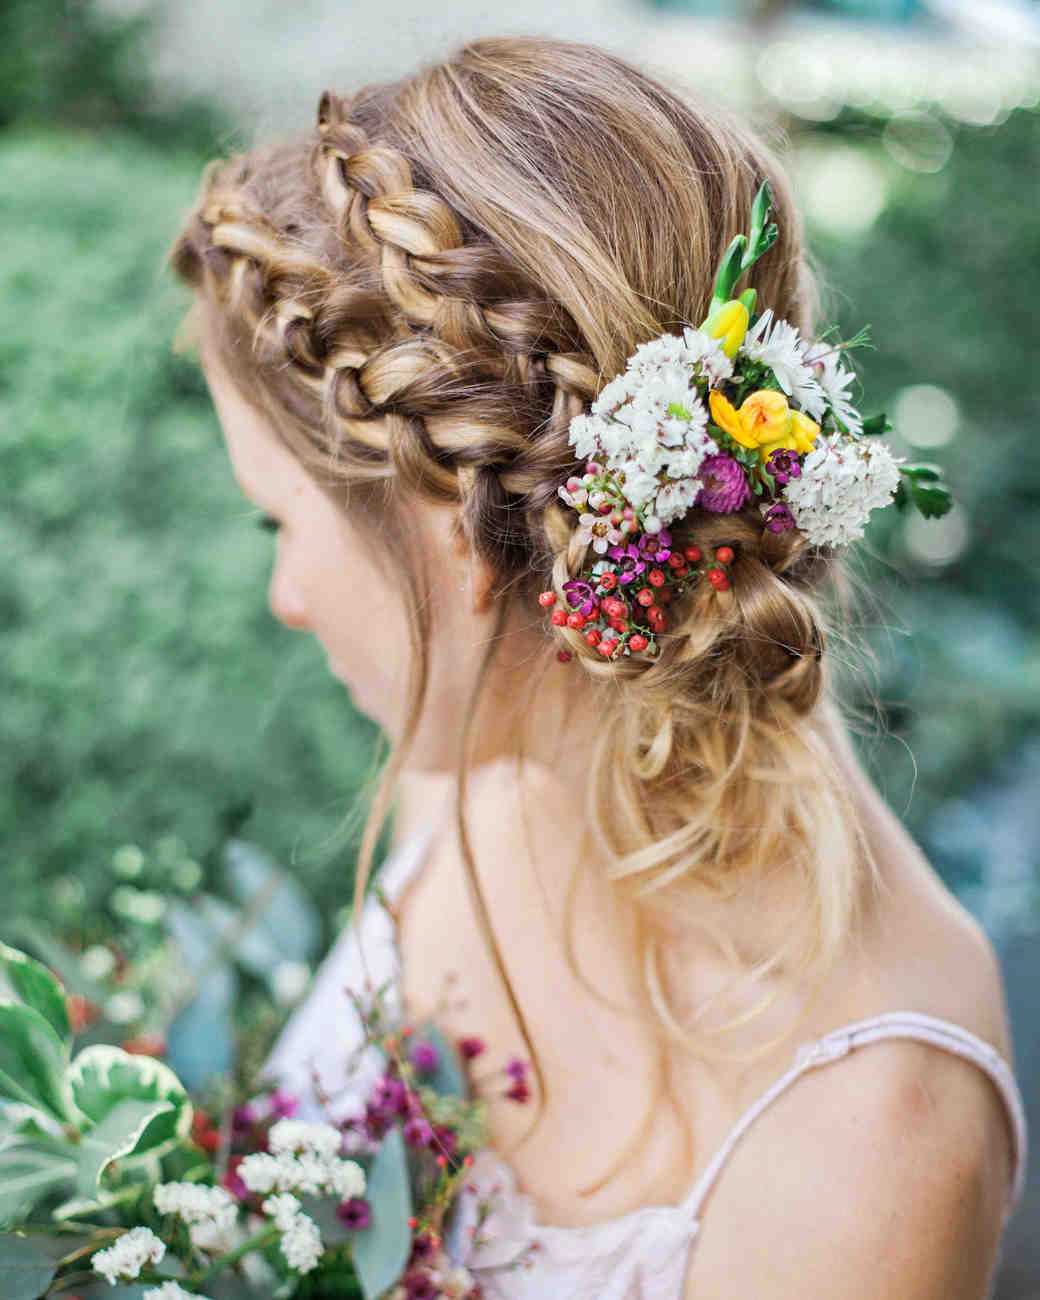 Wedding Hairstyle Crown: 10 Ways To Upgrade The Wedding Braid